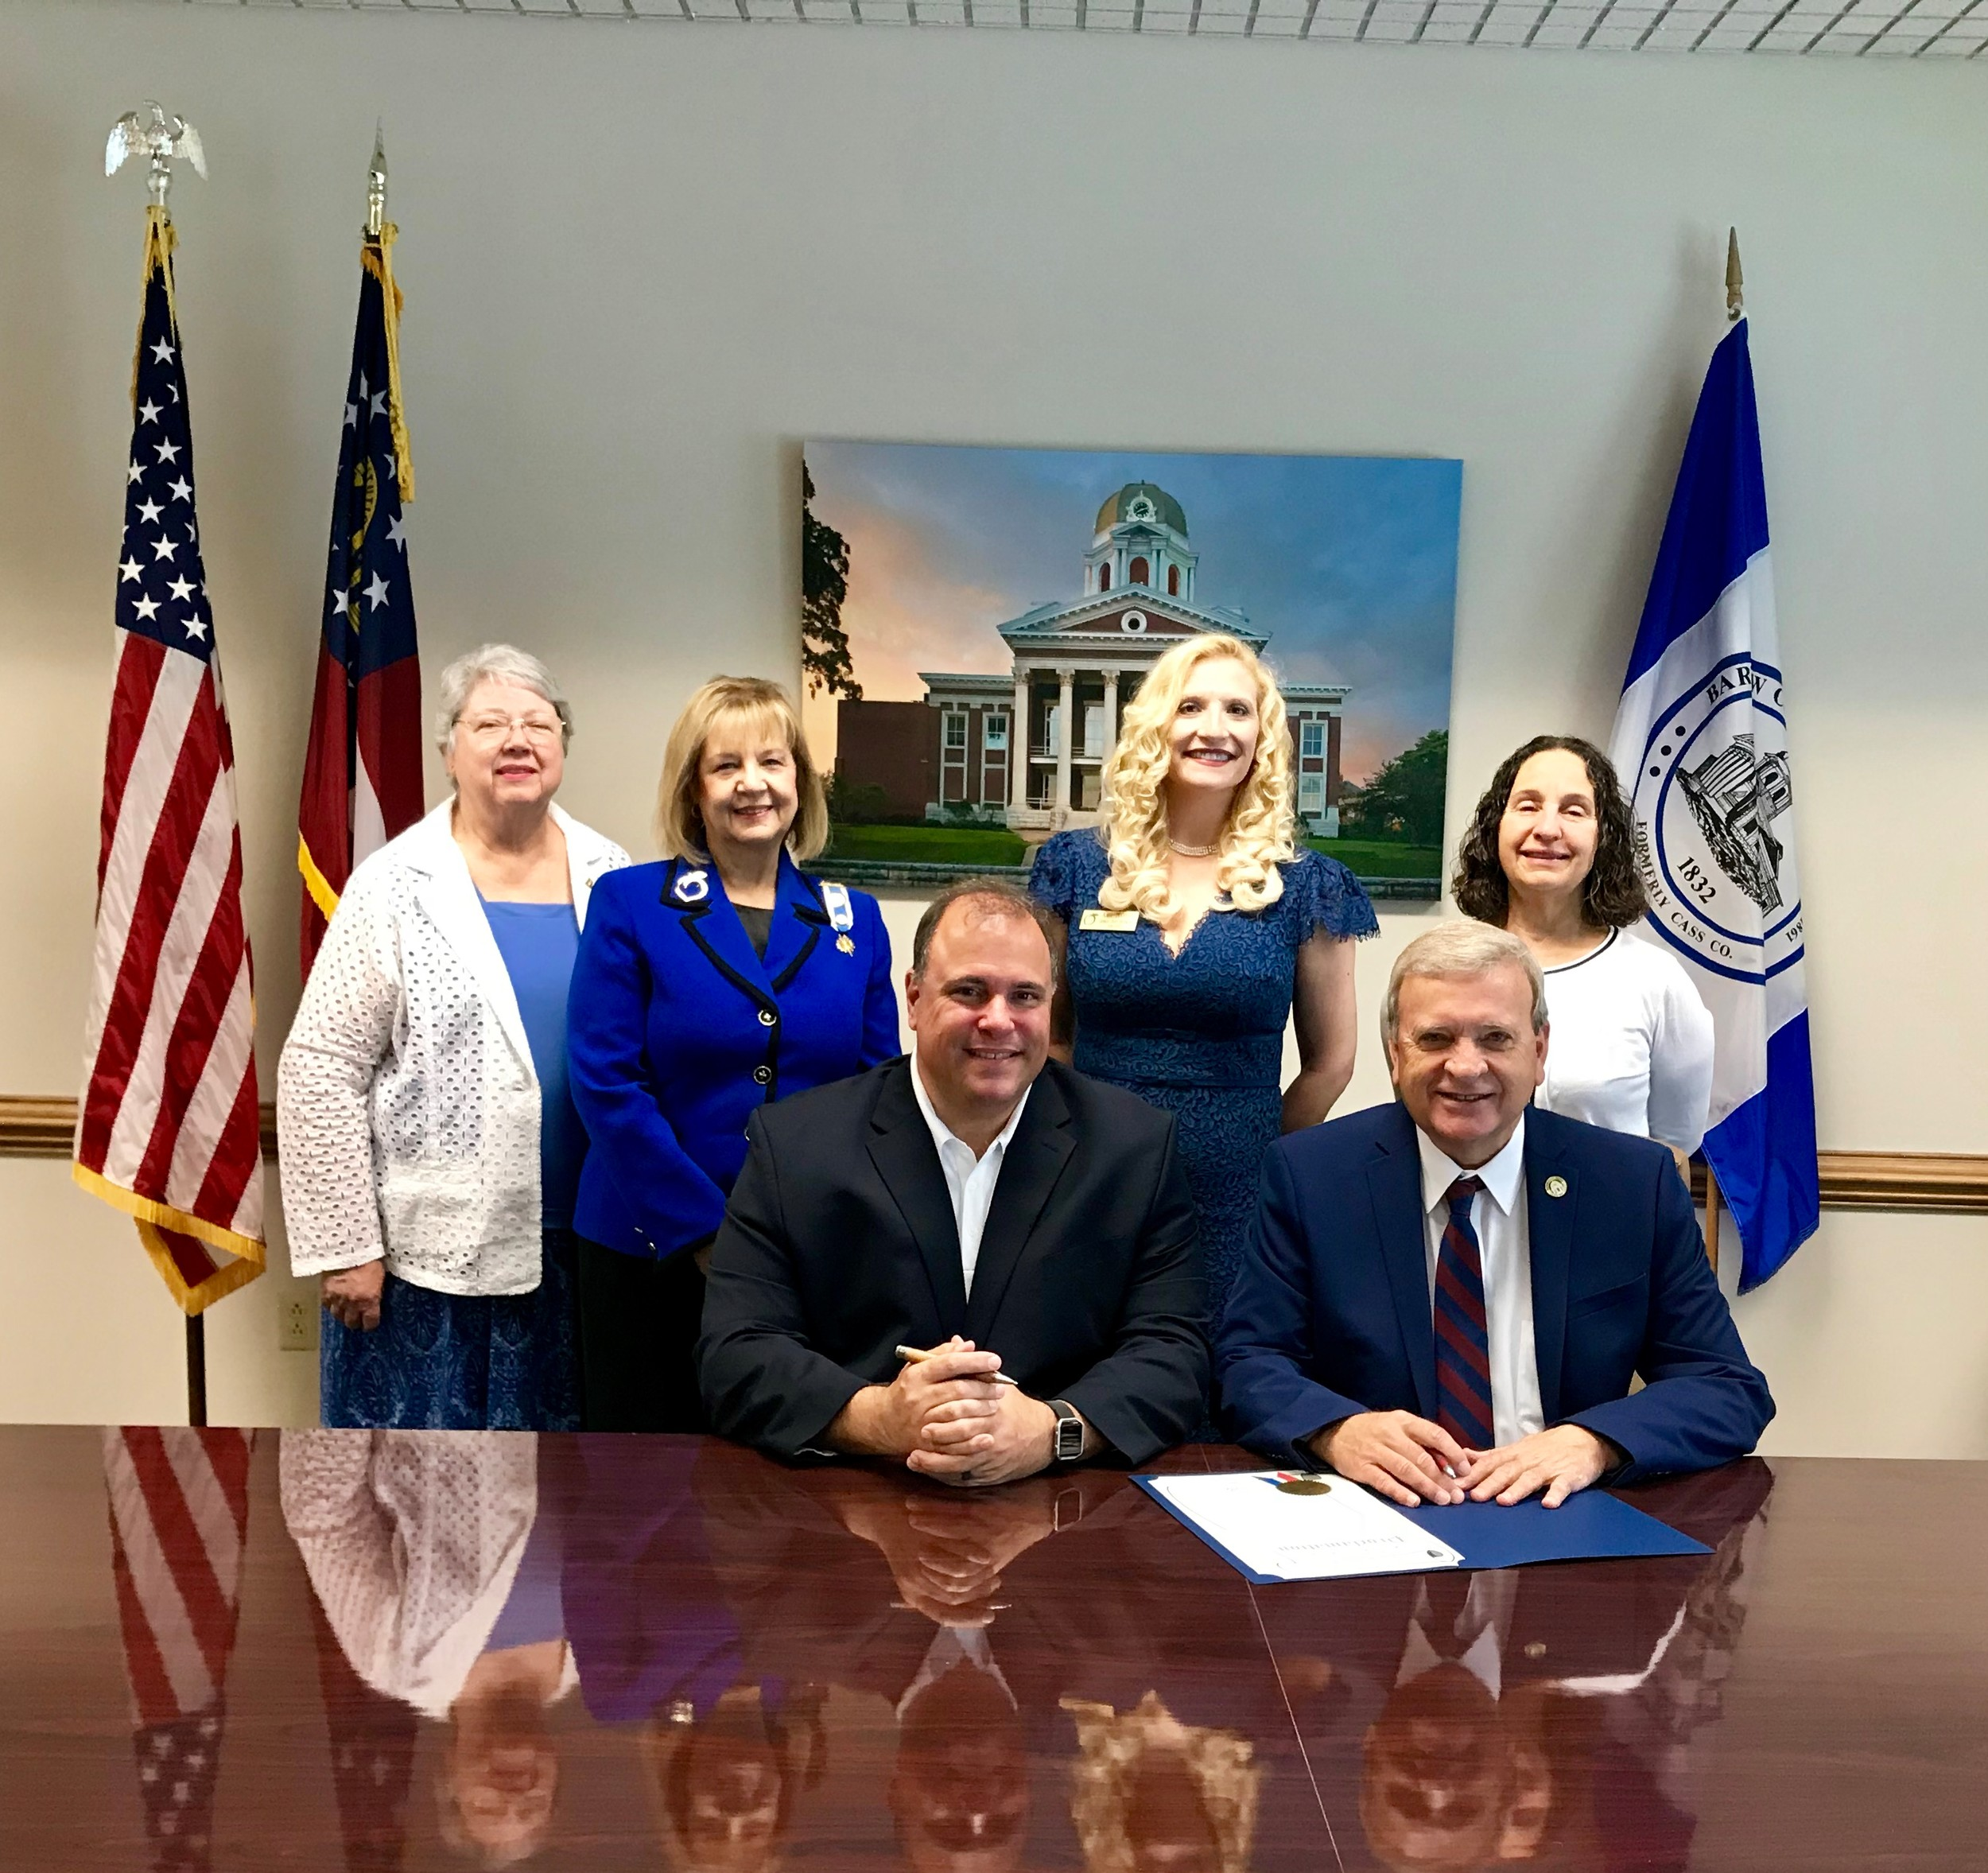 National Society Daughters of the American Revolution members, back from left, Leann Papp, Carolyn Key, Amy Nation and Beth Williams watch as Cartersville Mayor Matt Santini, left, and Bartow County Commissioner Steve Taylor sign a proclamation recognizing Sept. 17-23 as Constitution Week.